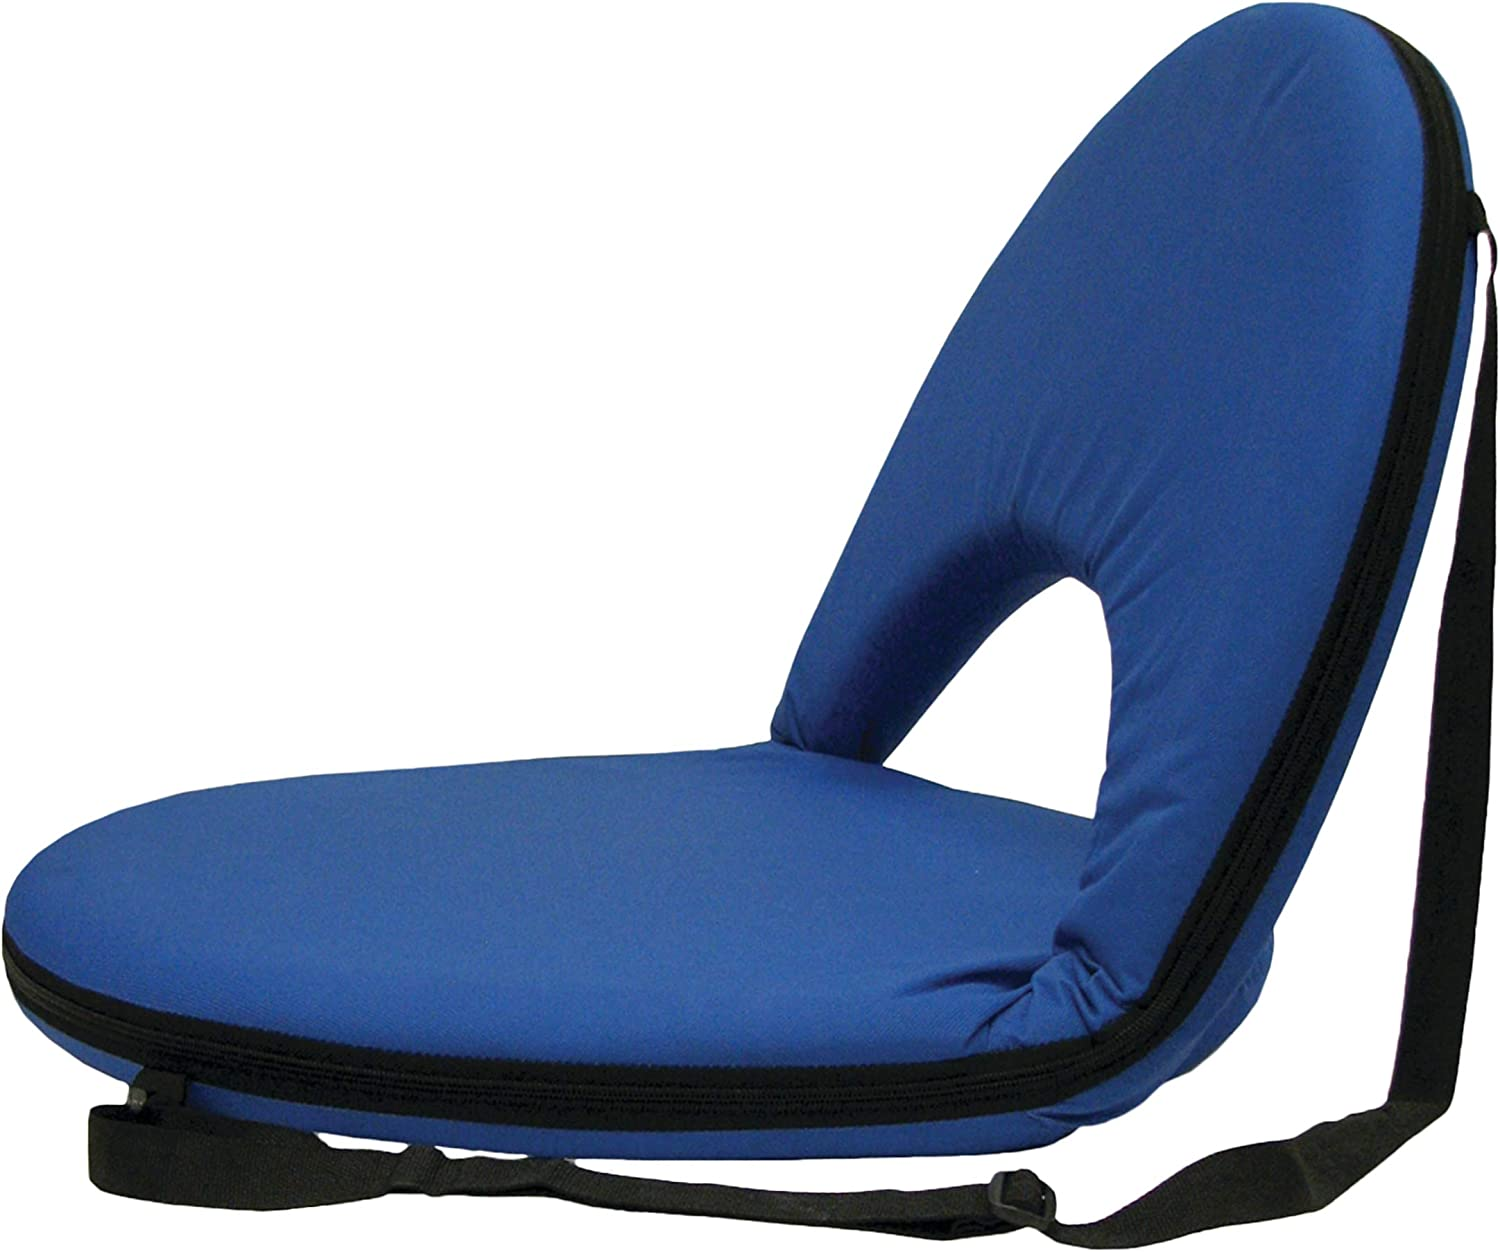 STANSPORT – Go Anywhere Multi-fold Comfy Padded Floor Chair With Back Support